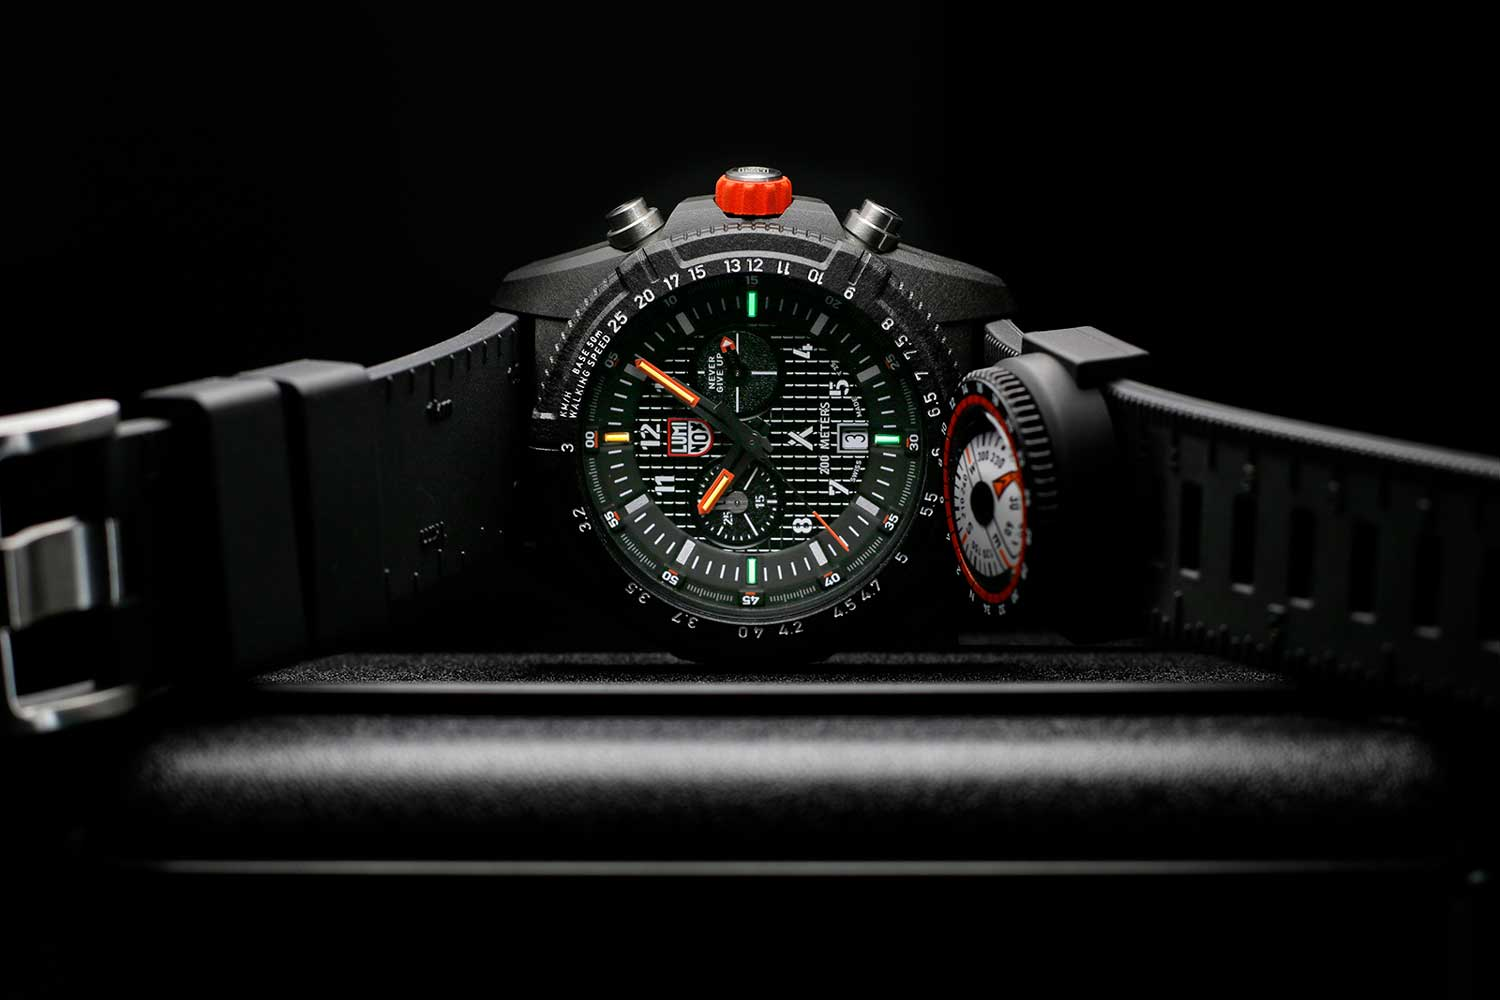 The Luminox Bear Grylls Survival 3780 Land Series in CARBONOX, with a compass attachment and rubber strap with ruler and Morse code markings.